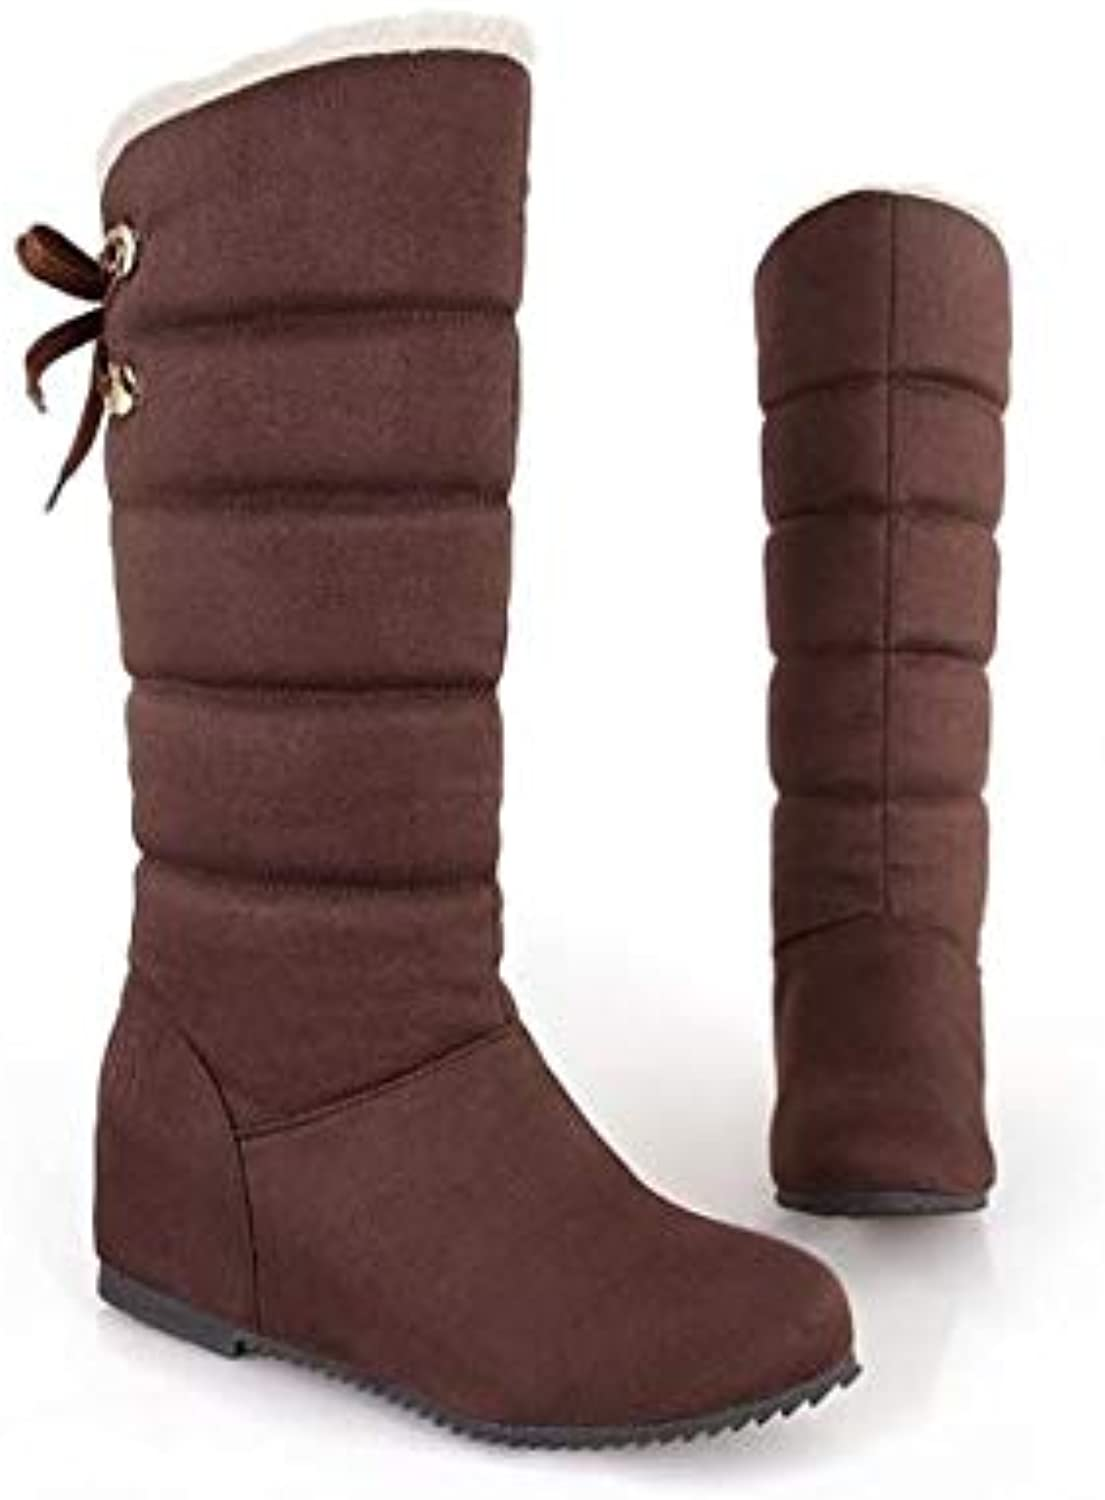 Increased Wedges in The Winter, Casual Warm Snow Boots, high-Lined Lined, Waist, Calf Boots, Women